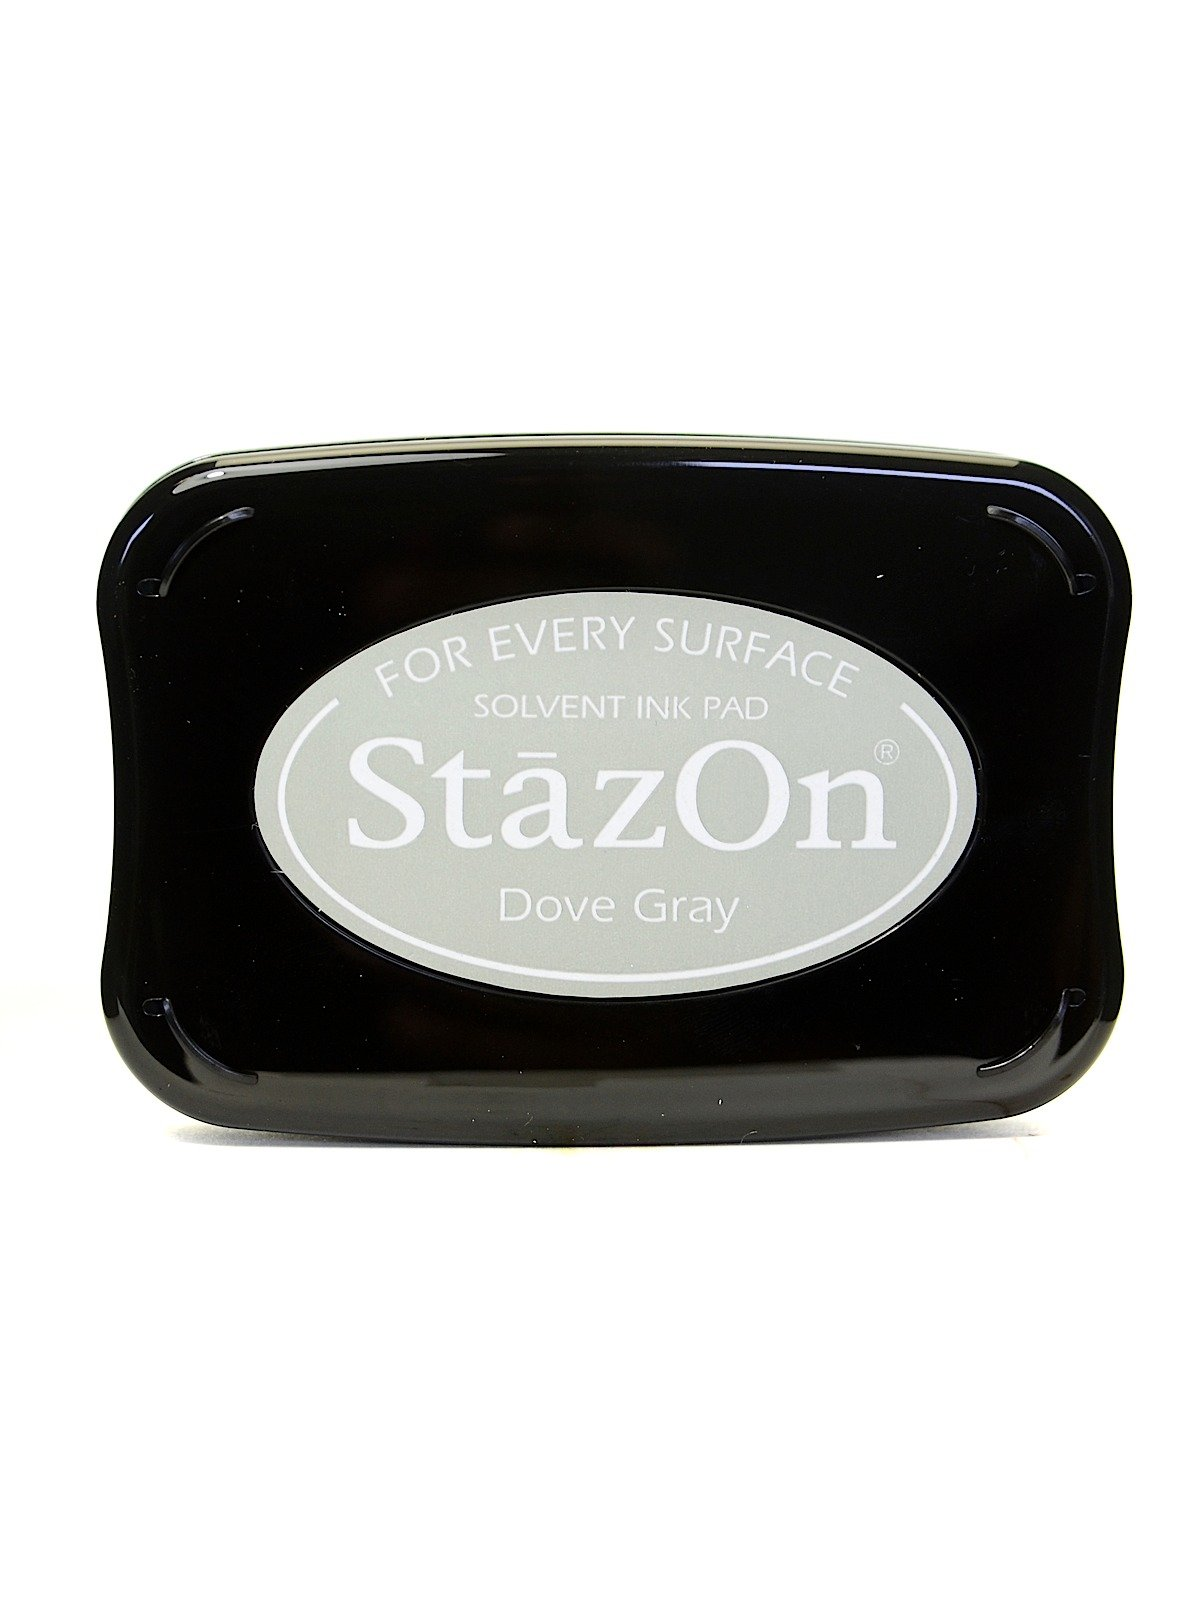 Tsukineko StazOn Solvent Ink dove gray 3.75 in. x 2.625 in. full-size pad [PACK OF 2 ]